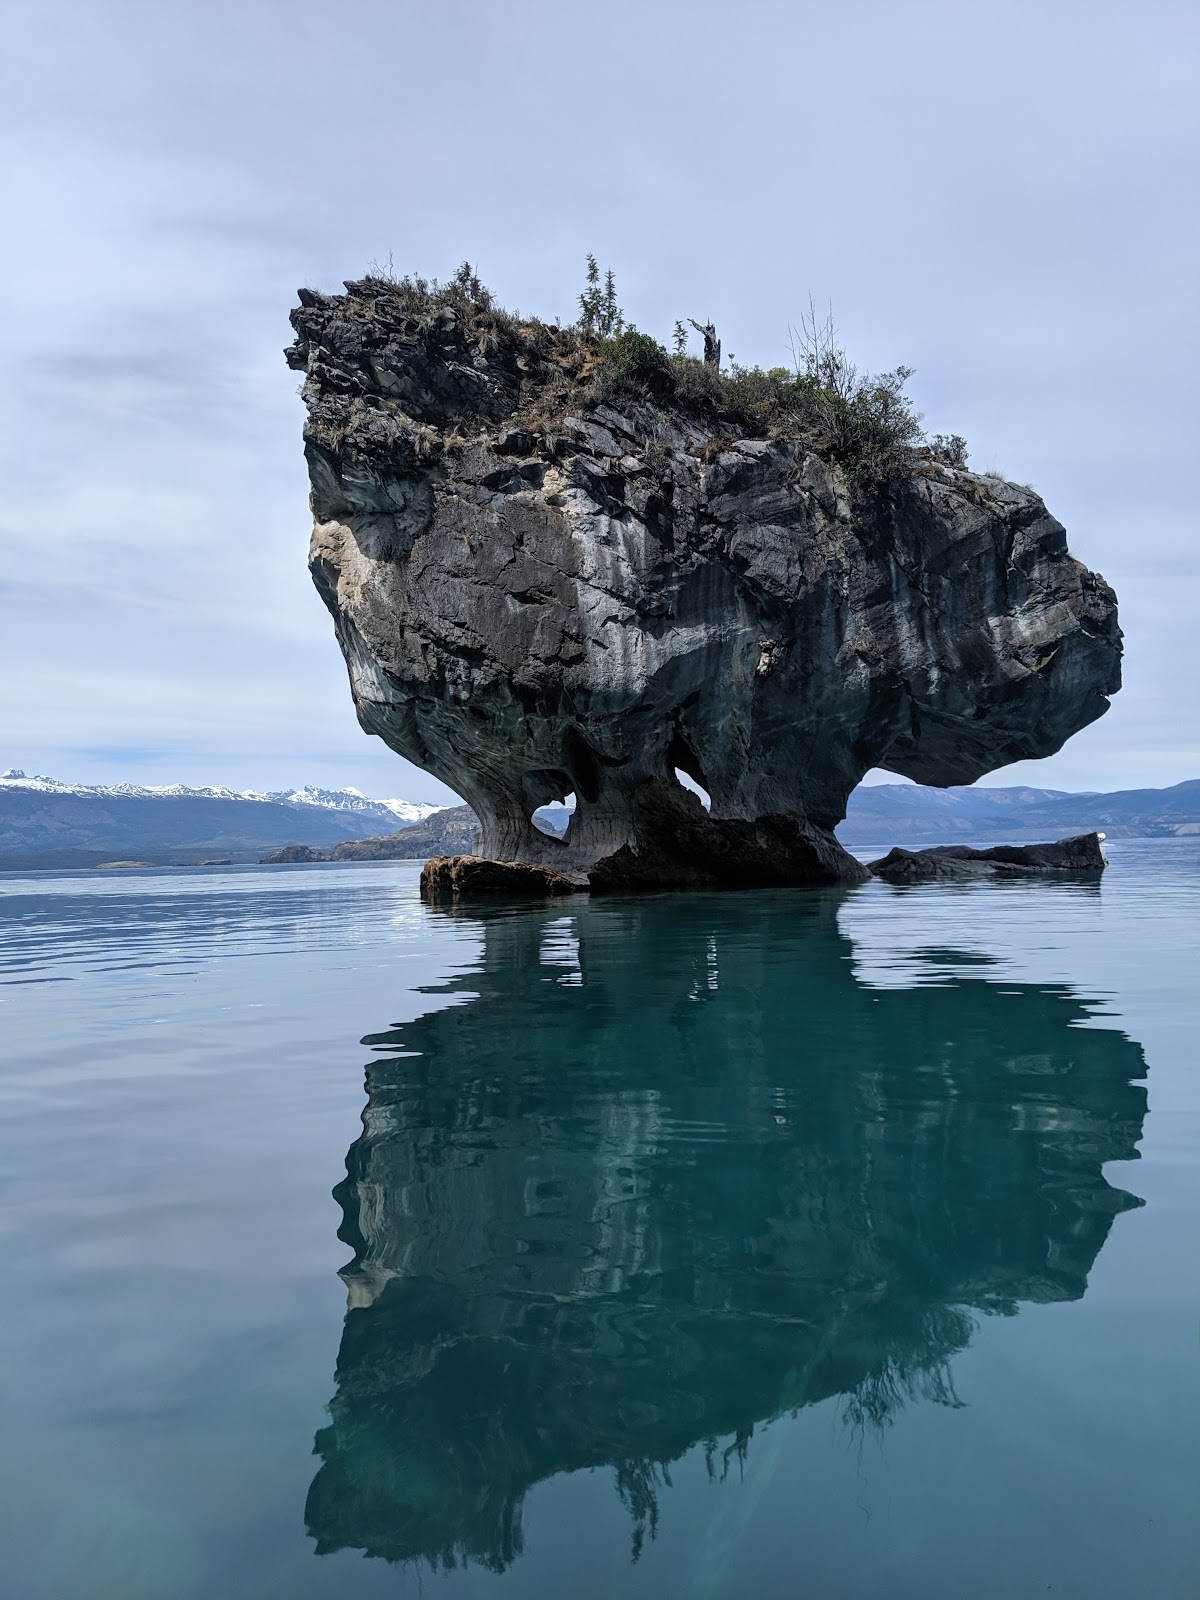 10 day road trip on the Carretera Austral - kayak tour to the Marble Caves